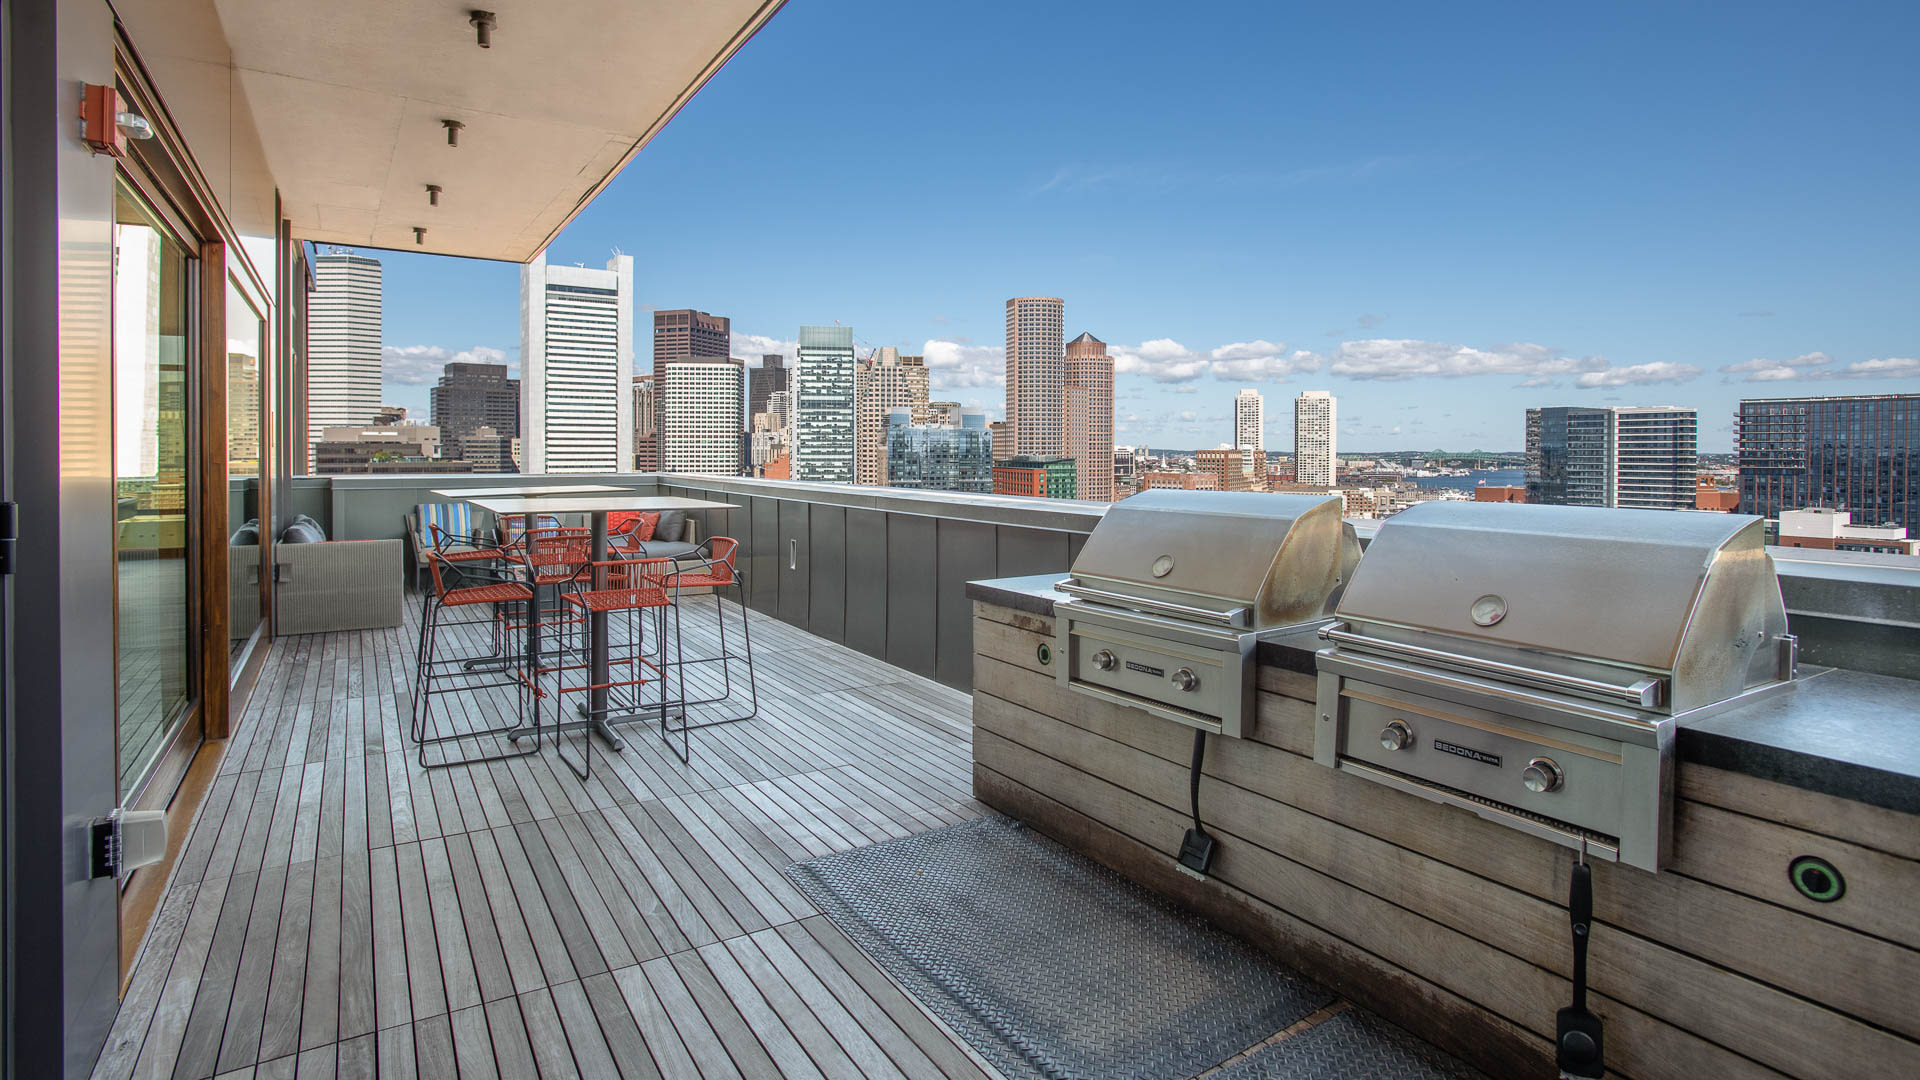 315 on A Apartments - Rooftop Terrace with Grilling Area